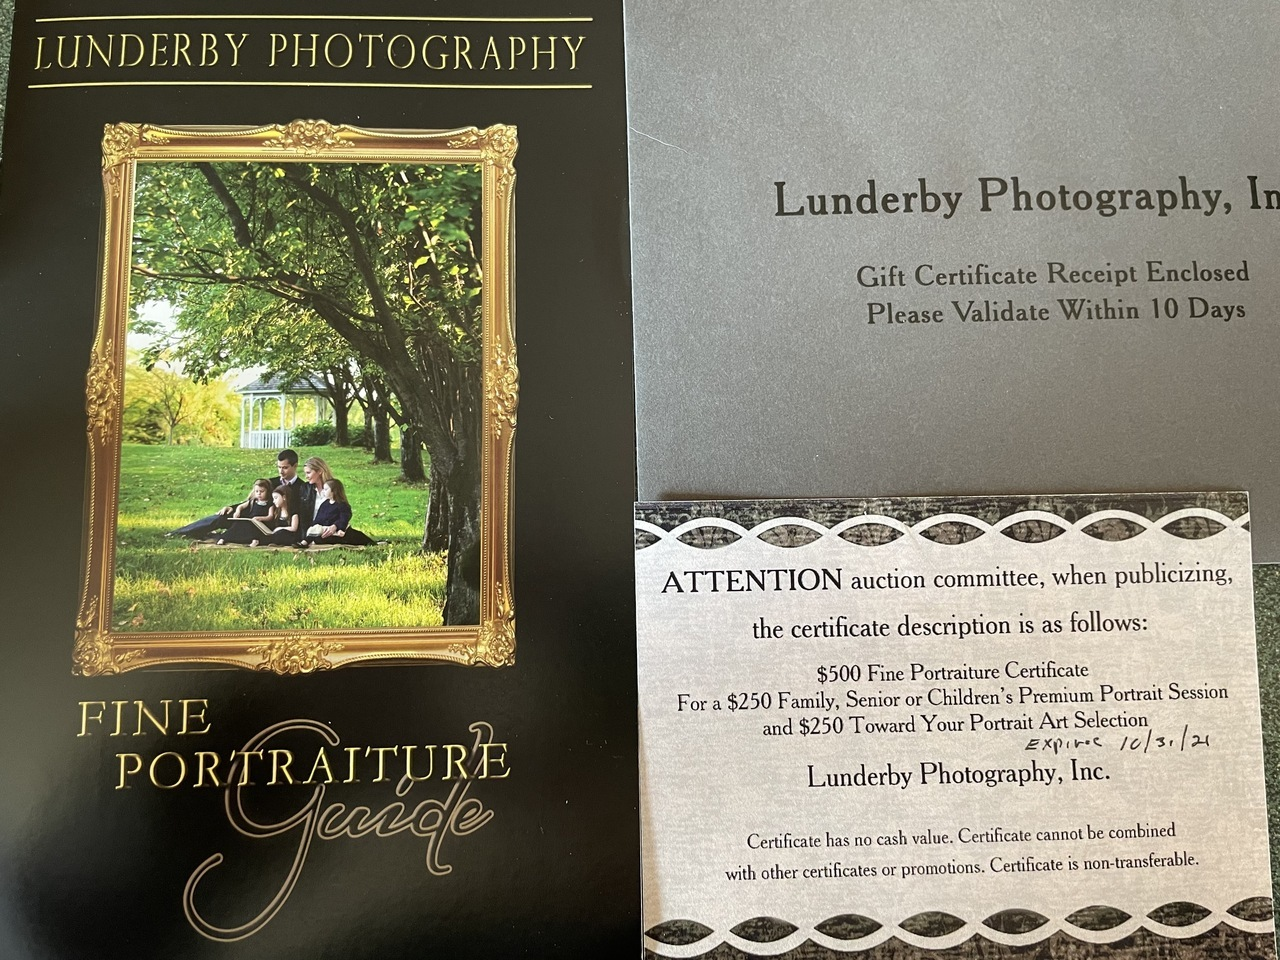 416. Lunderby Photography Package